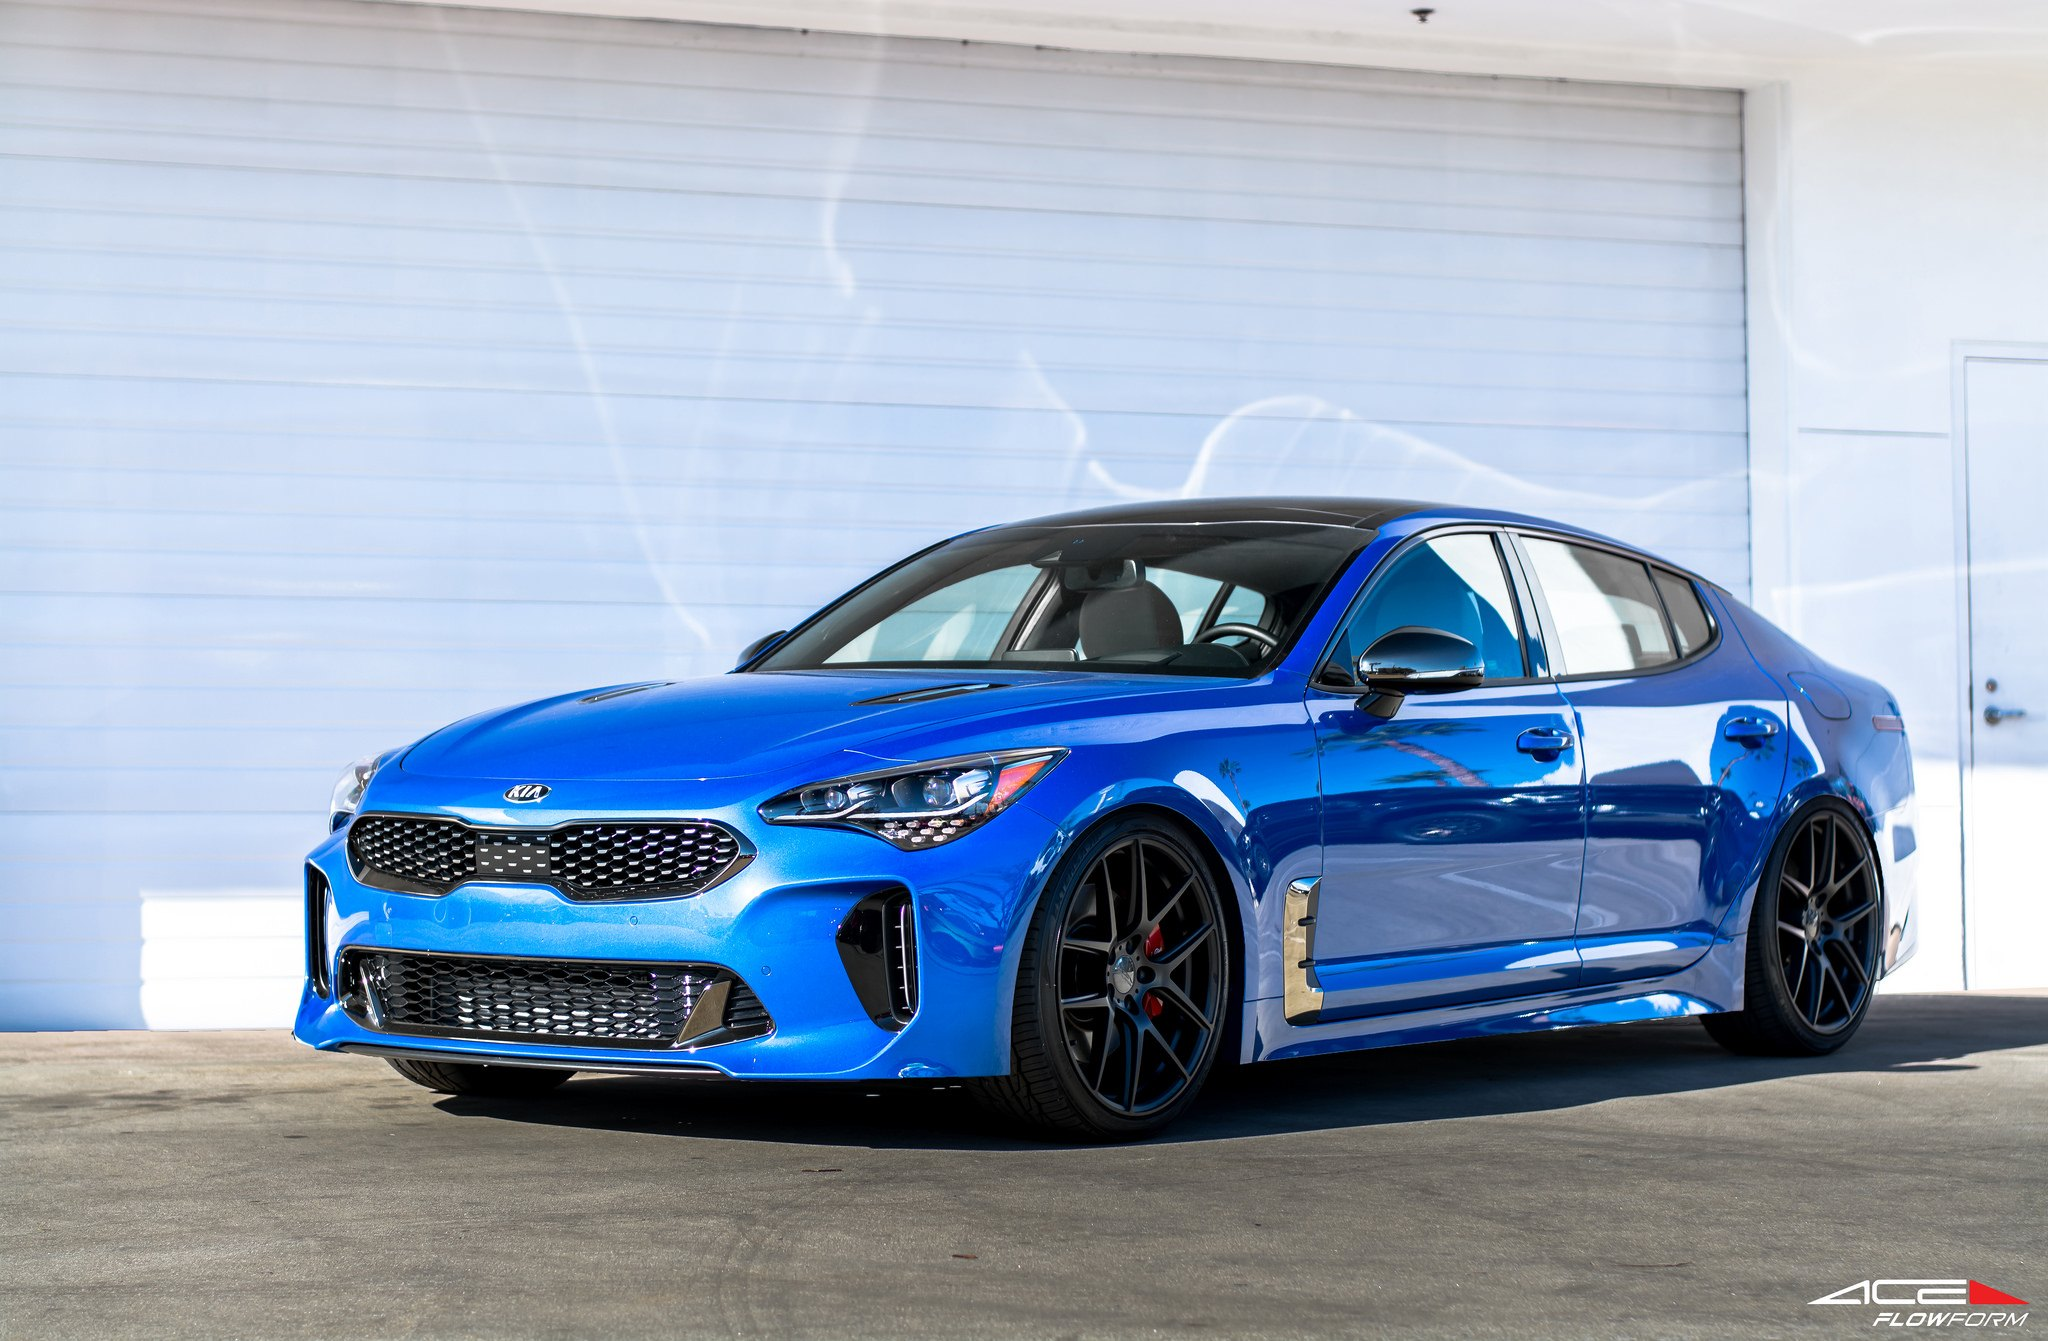 Redesigned Face of Blue Kia Stinger with Custom Mesh Grille — CARiD